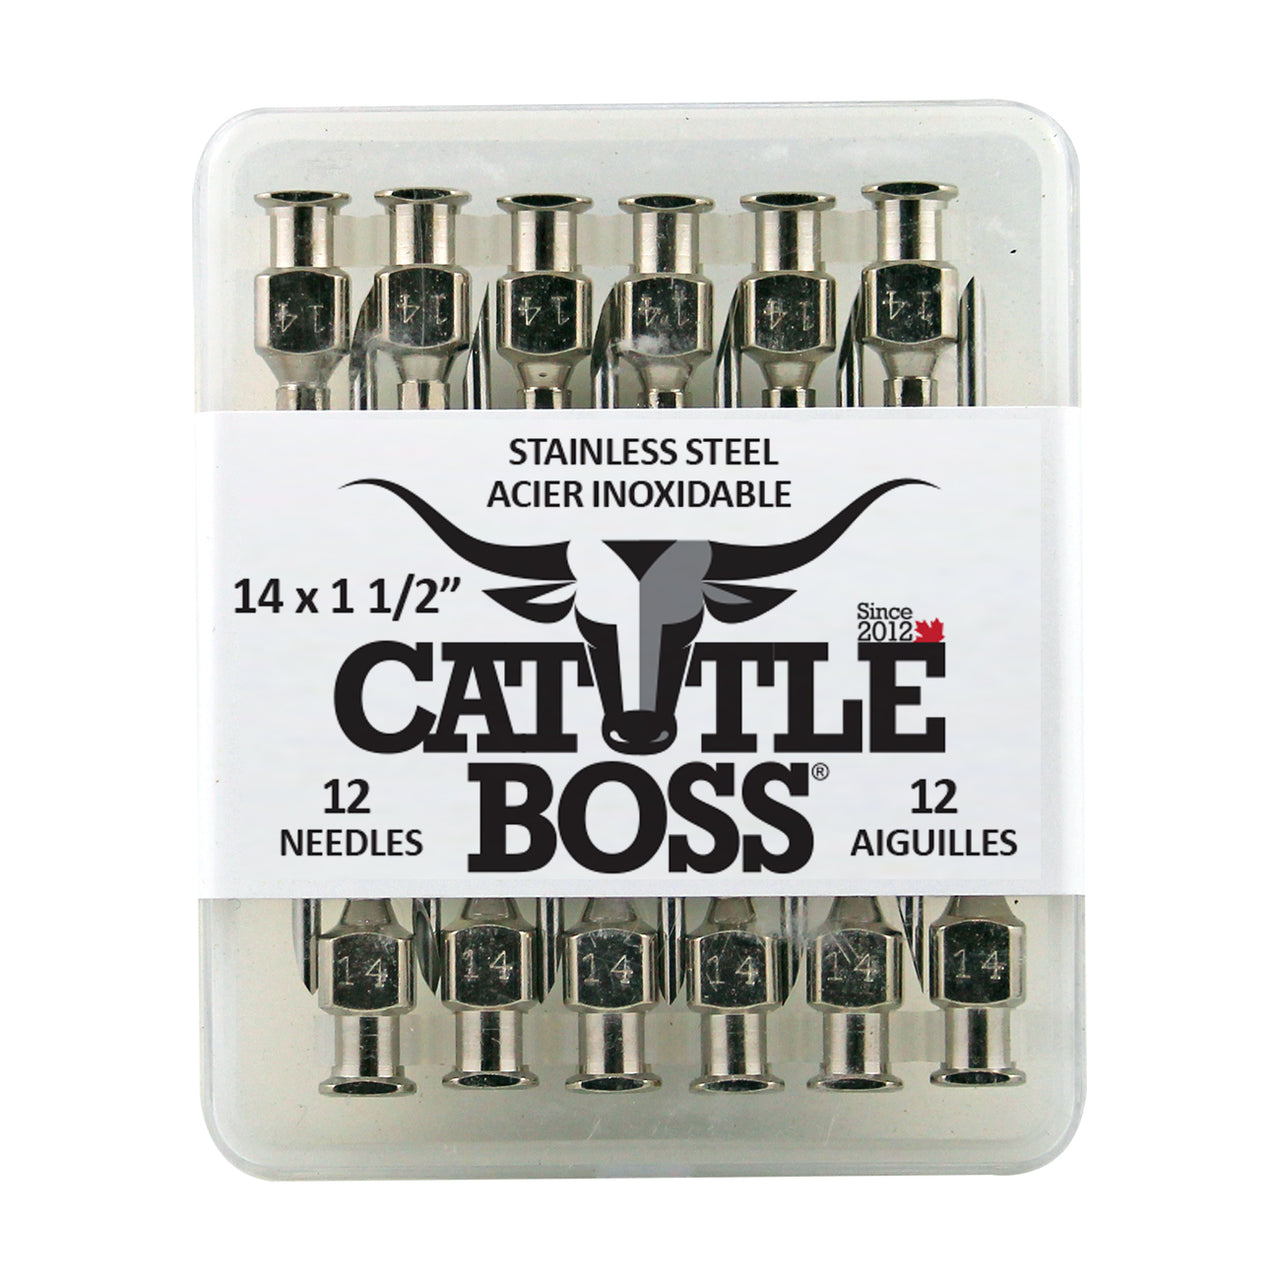 Cattle Boss stainless steel hub needle (12 pack) 14x1 1/2